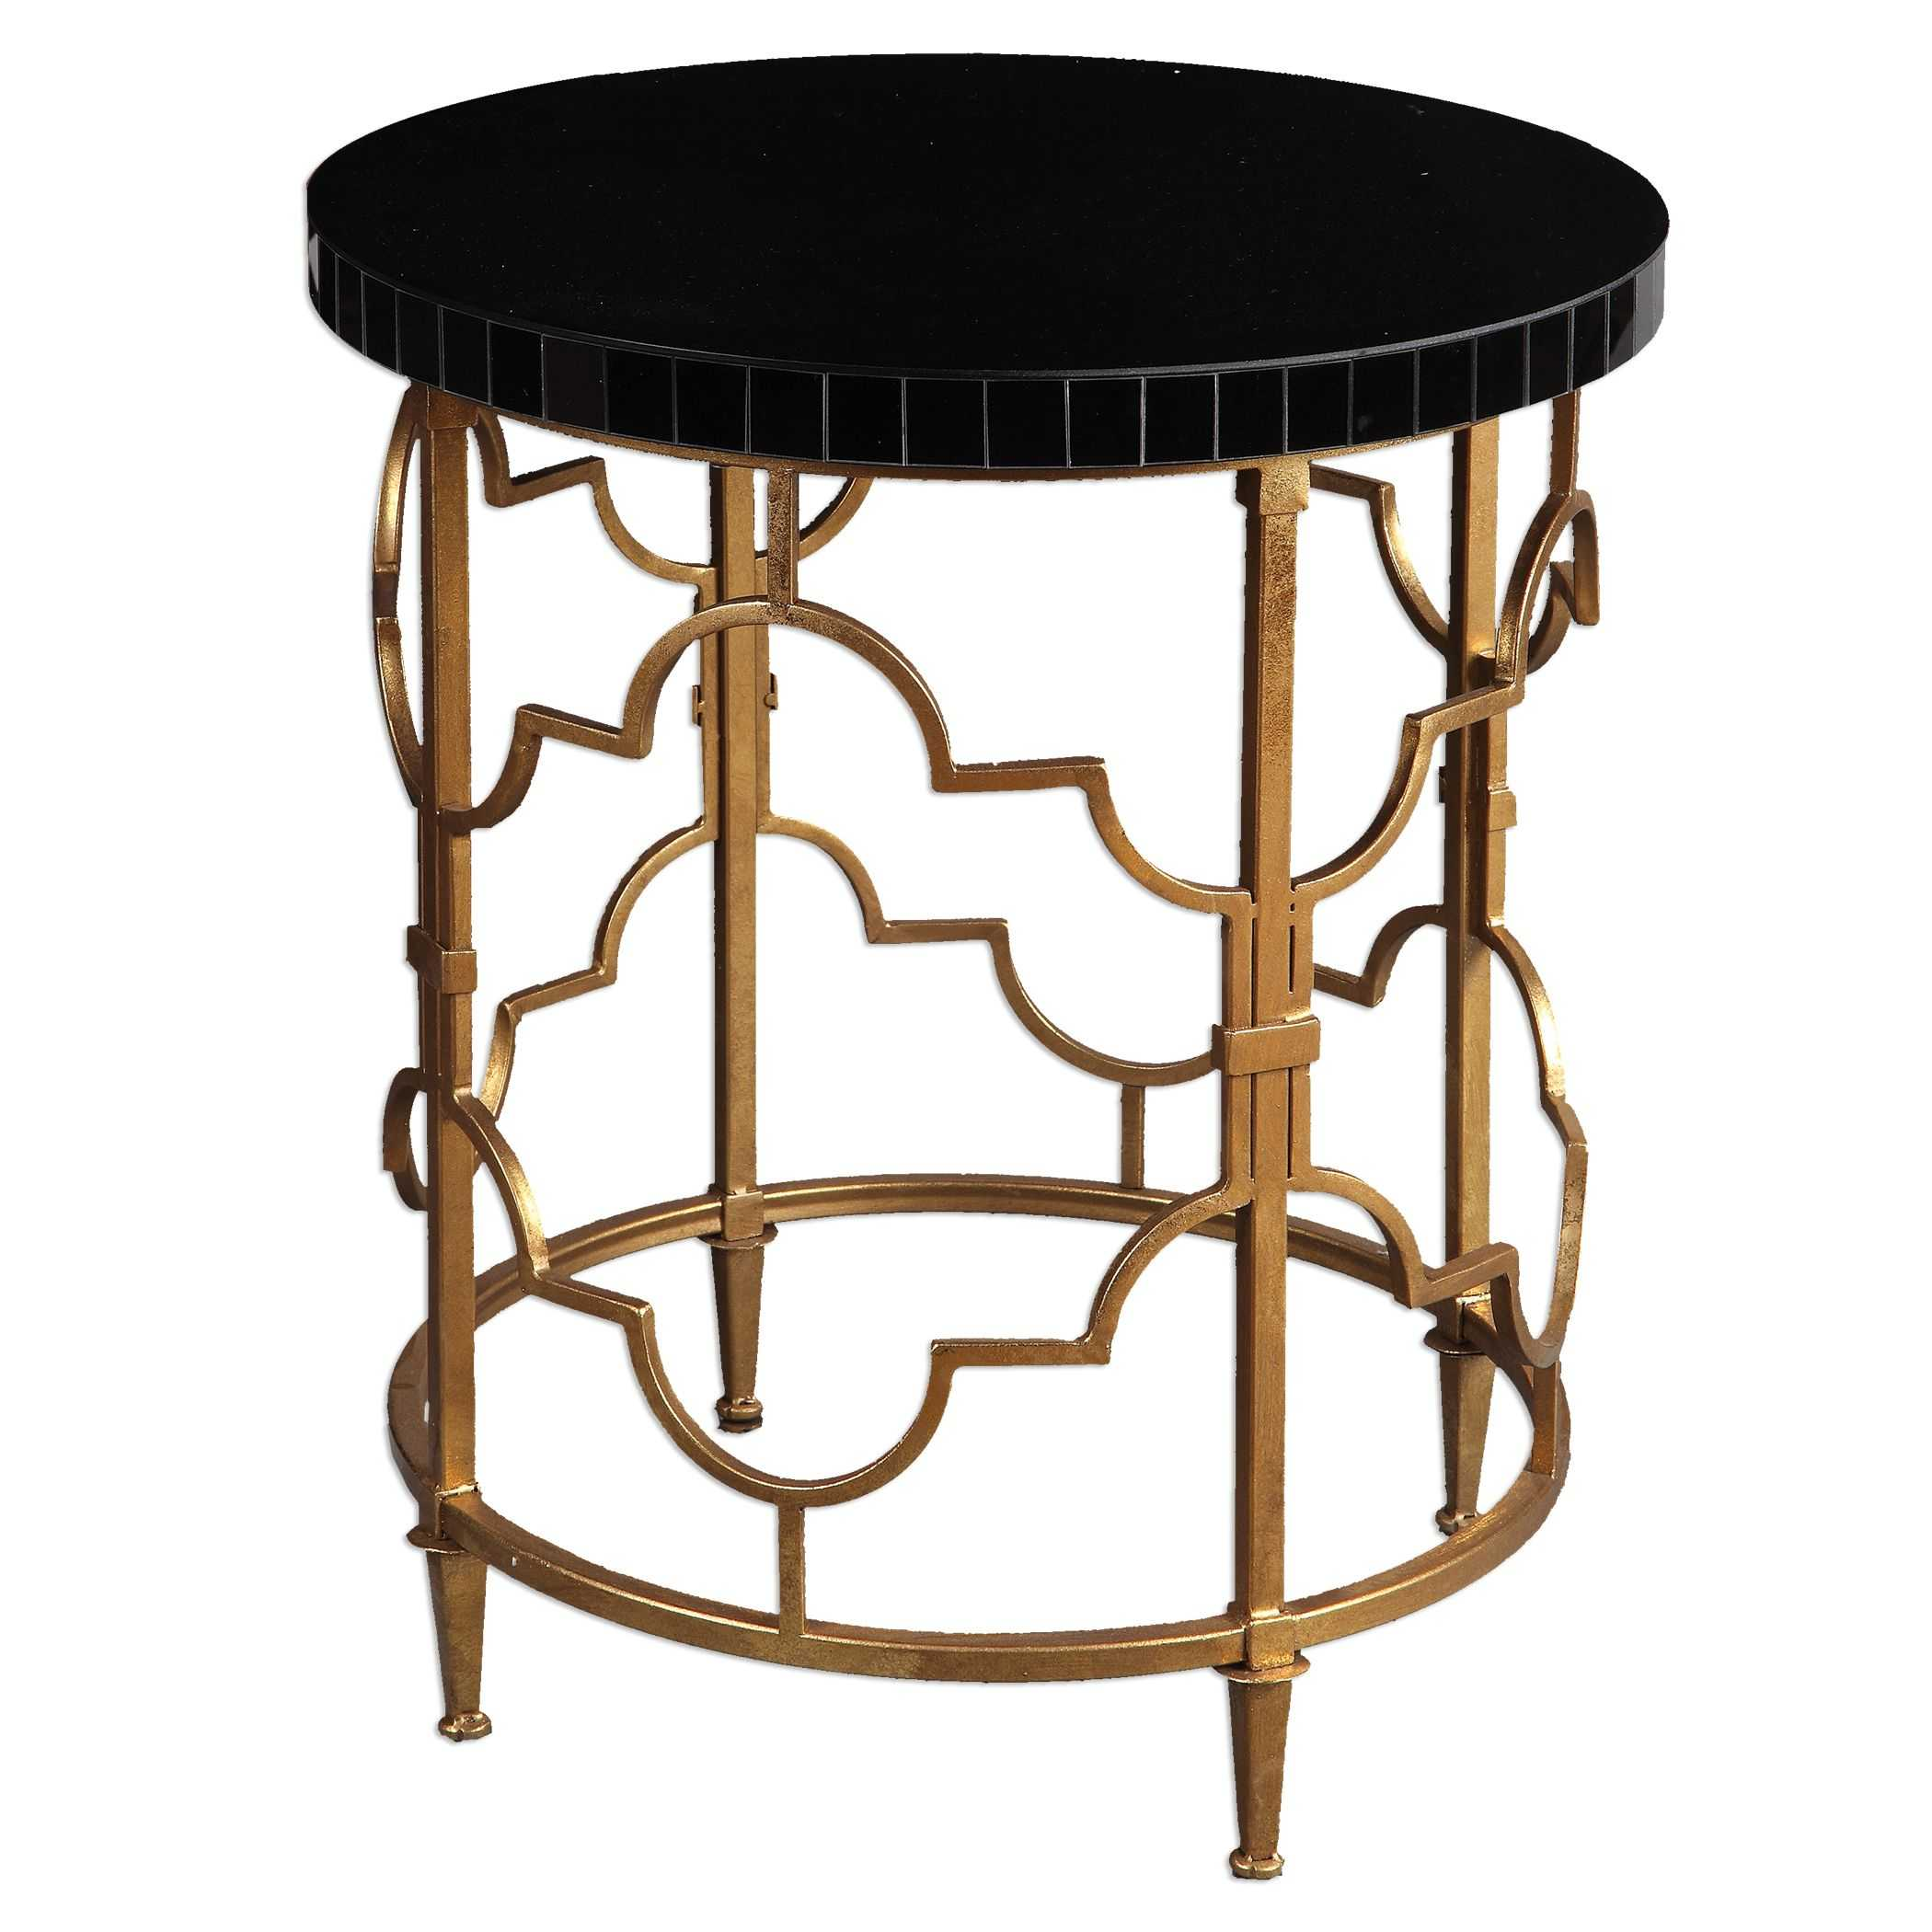 gold metal and glass arley accent table world market french uttermost mosi black hourglass threshold ott marble brass end modern furniture lighting contact paper dark brown